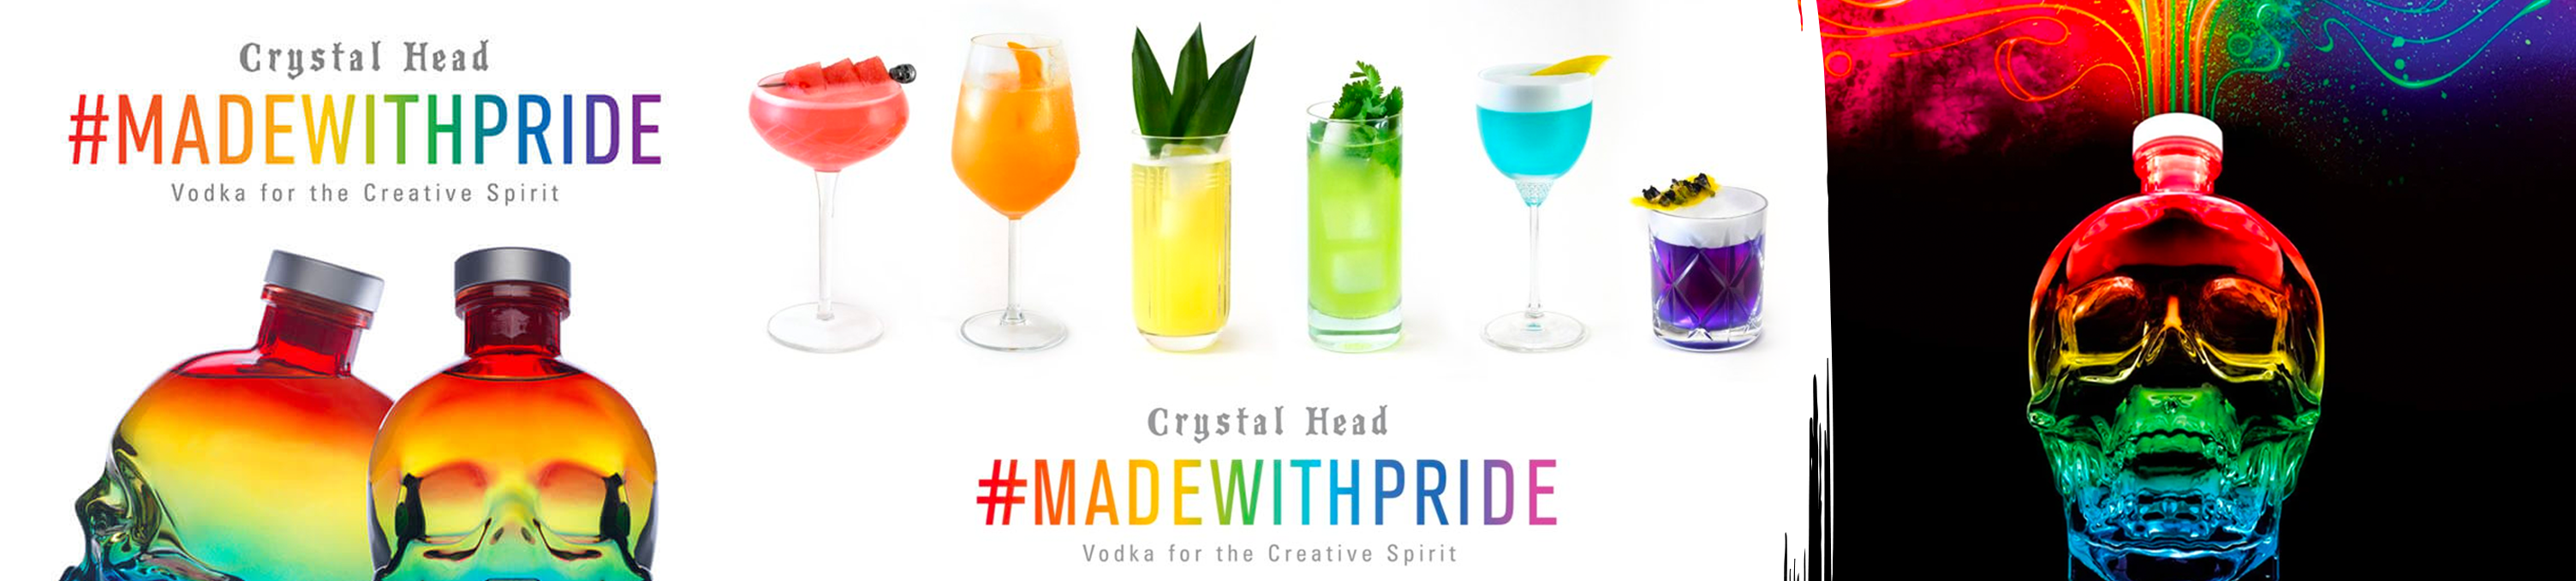 made with pride 2020 collection crystal head vodka